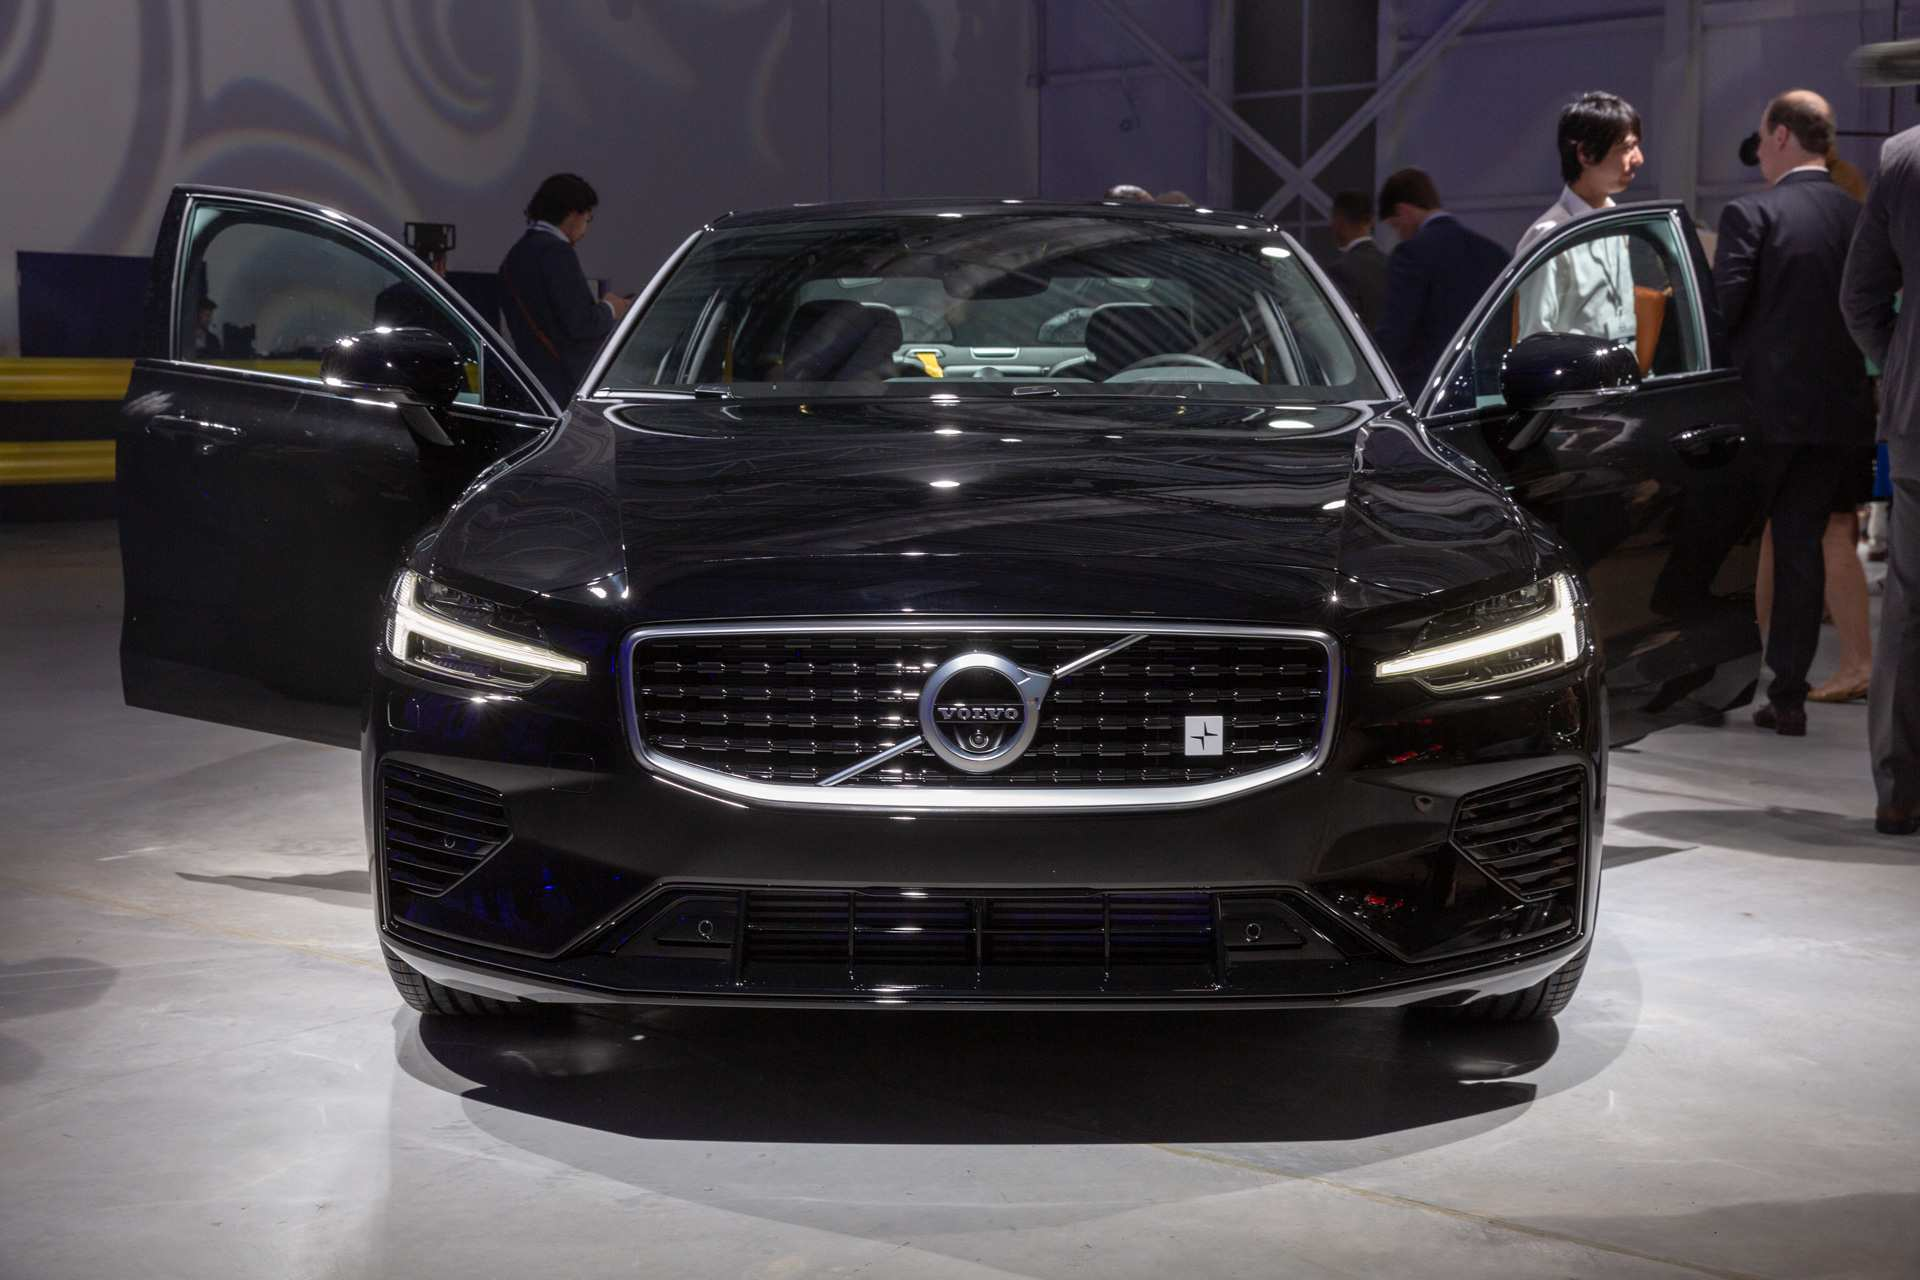 72 All New 2019 Volvo S60 Polestar Spesification